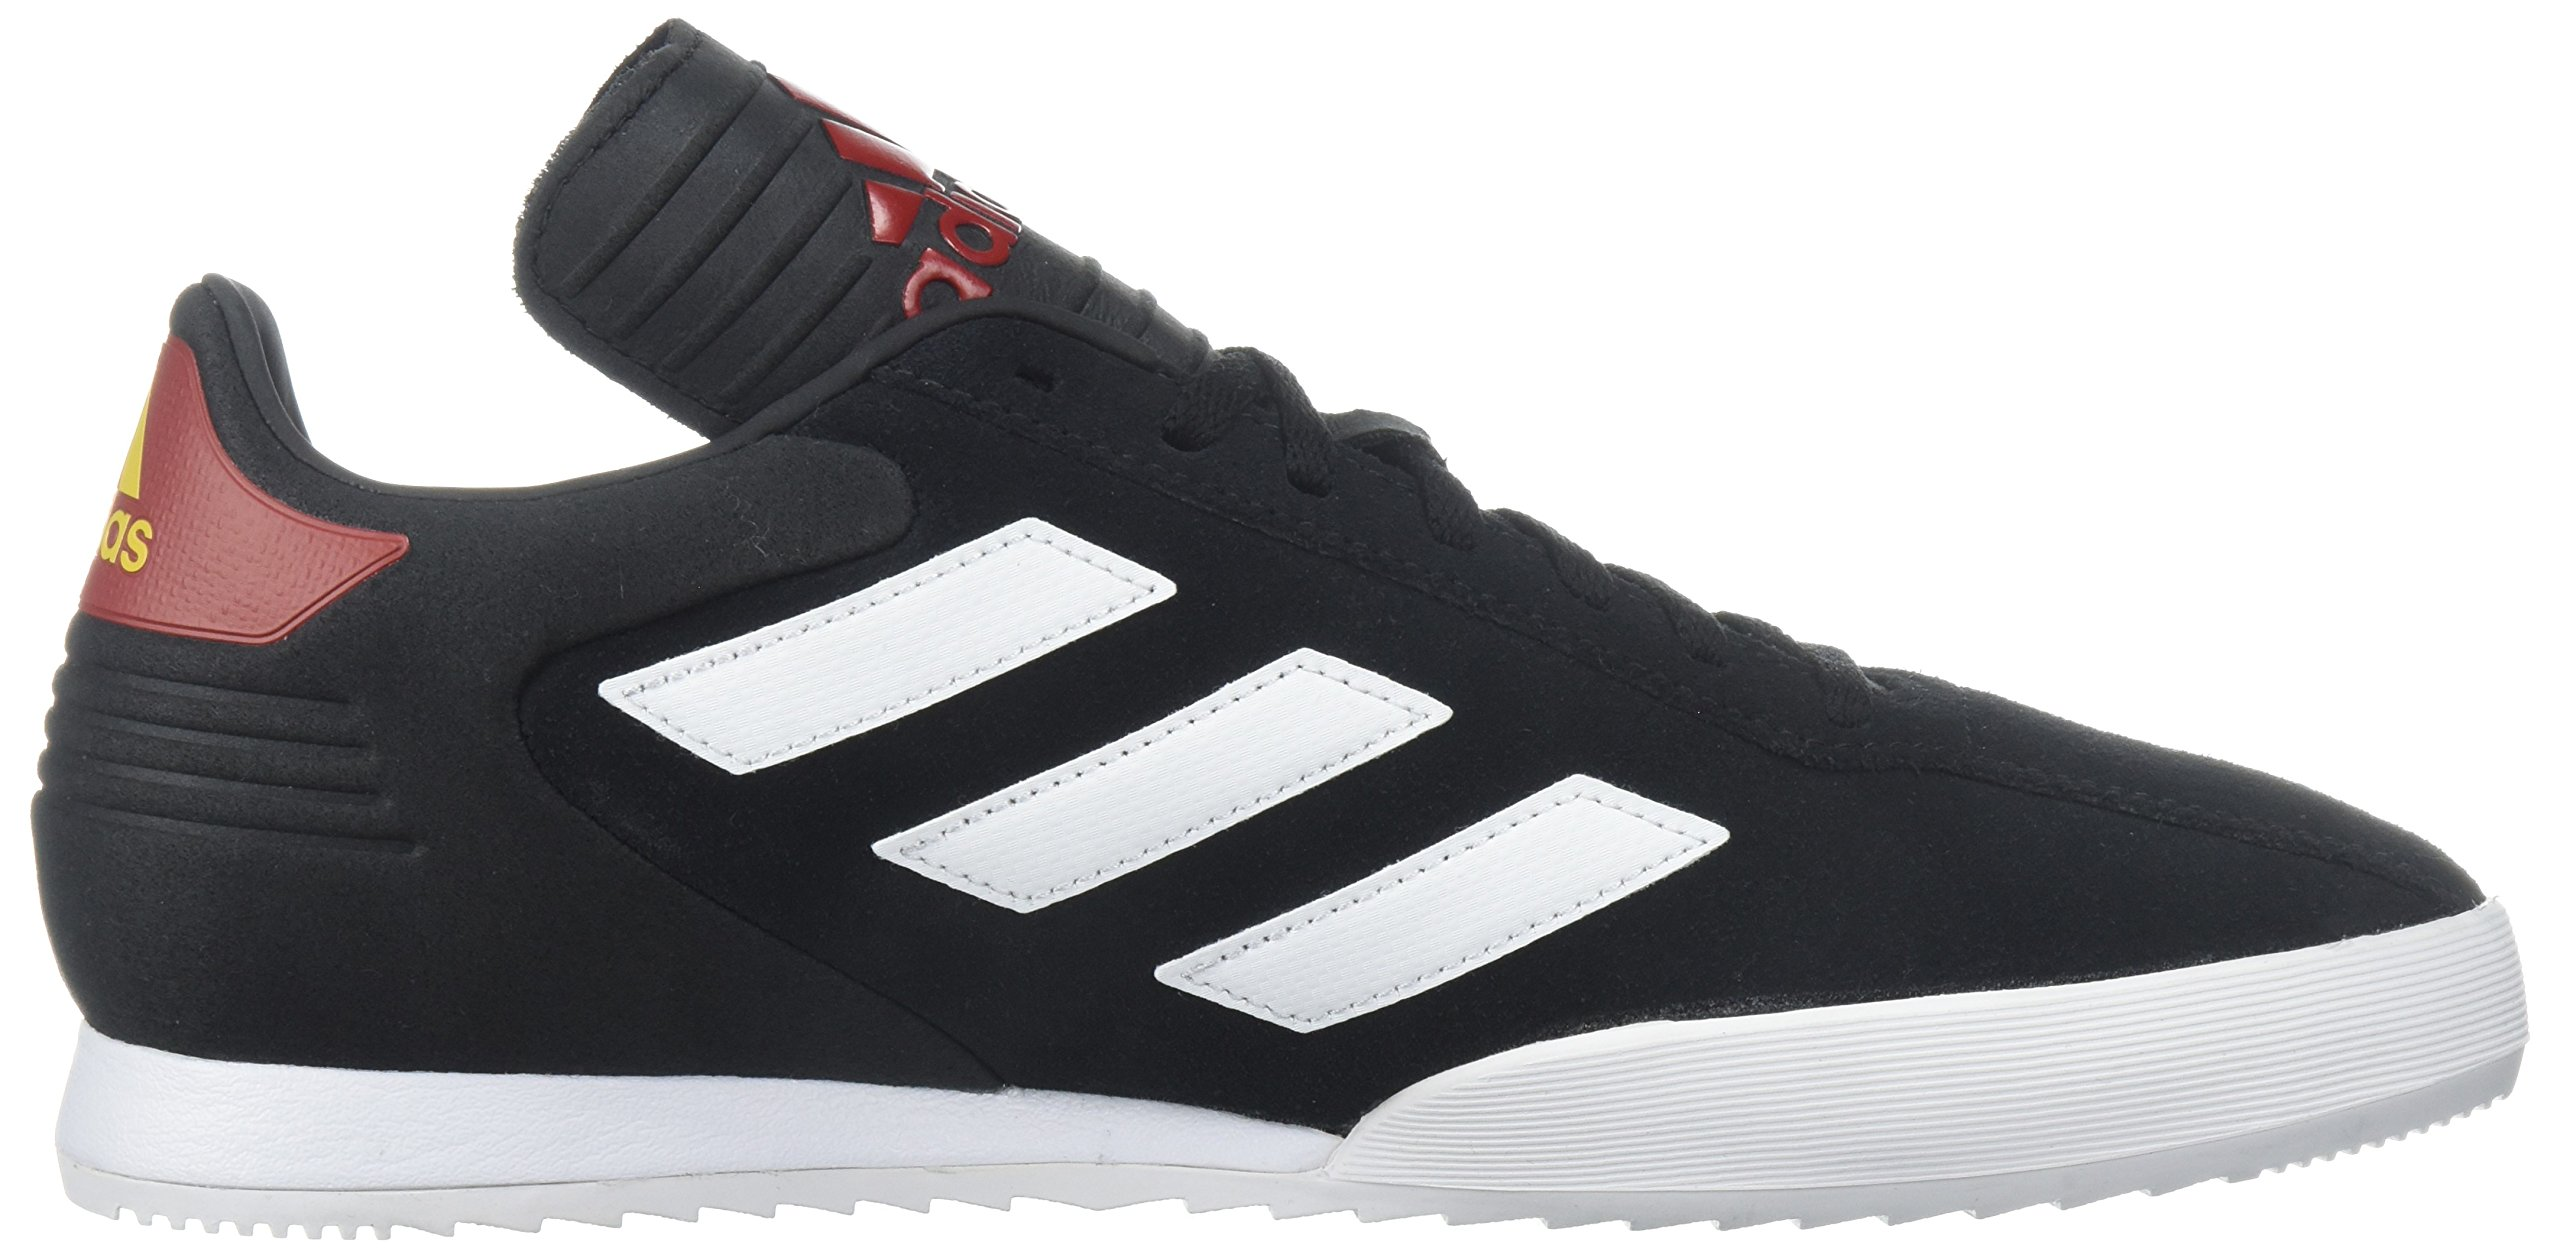 adidas Men's Copa Super Soccer Shoe, Black/White/Power Red, 9 M US by adidas (Image #7)